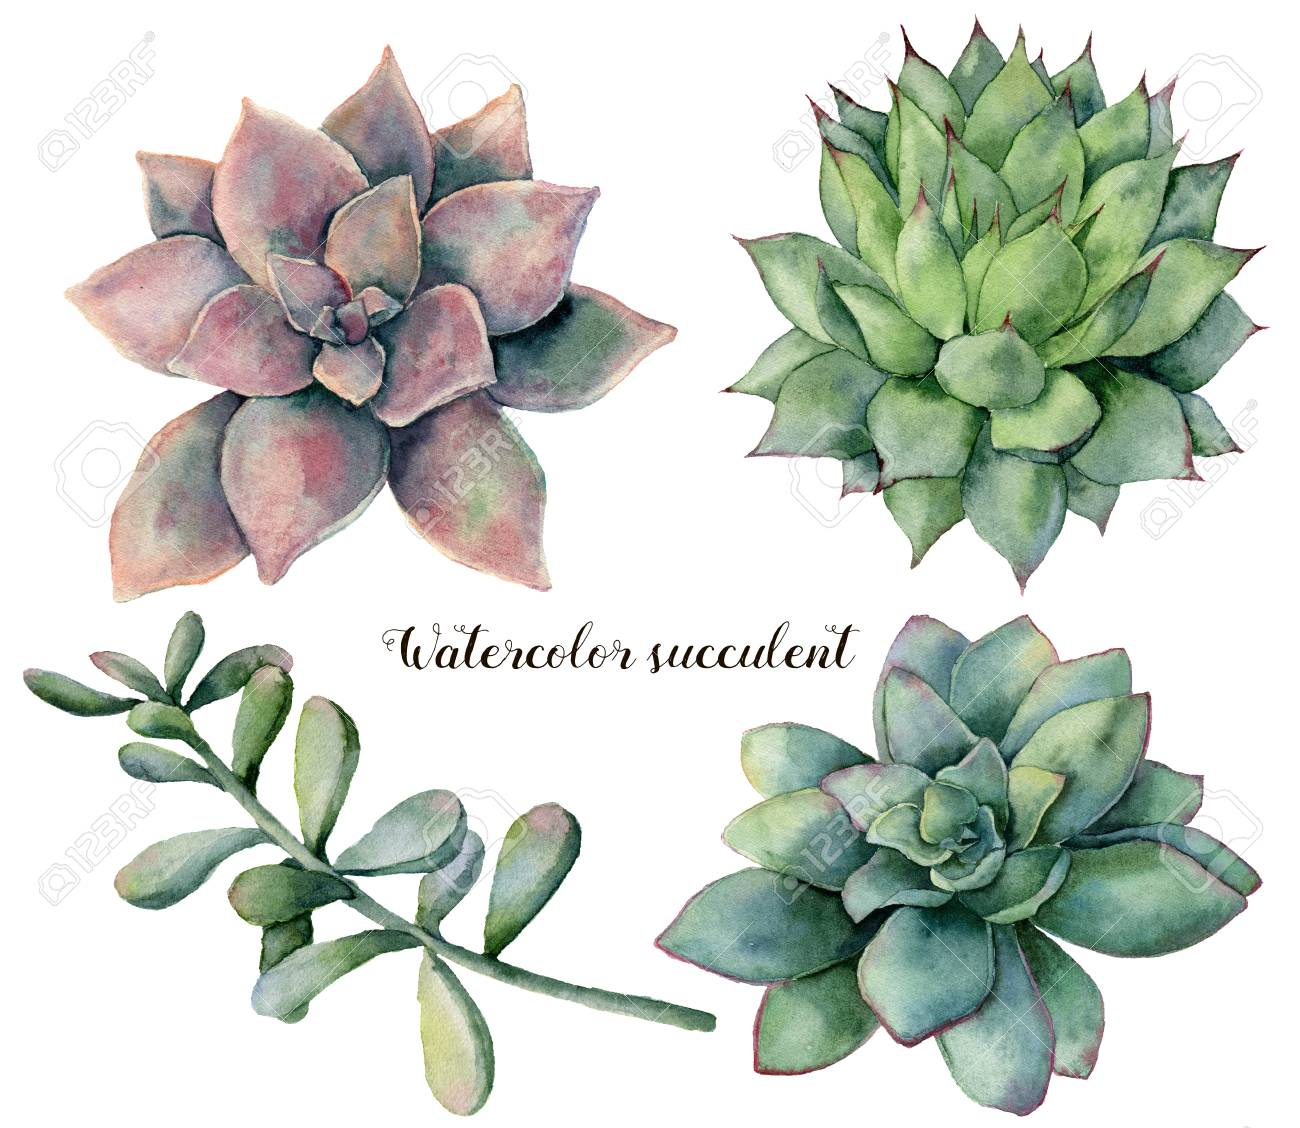 Watercolor Set With Succulent And Branch Hand Painted Colorful Stock Photo Picture And Royalty Free Image Image 100895723